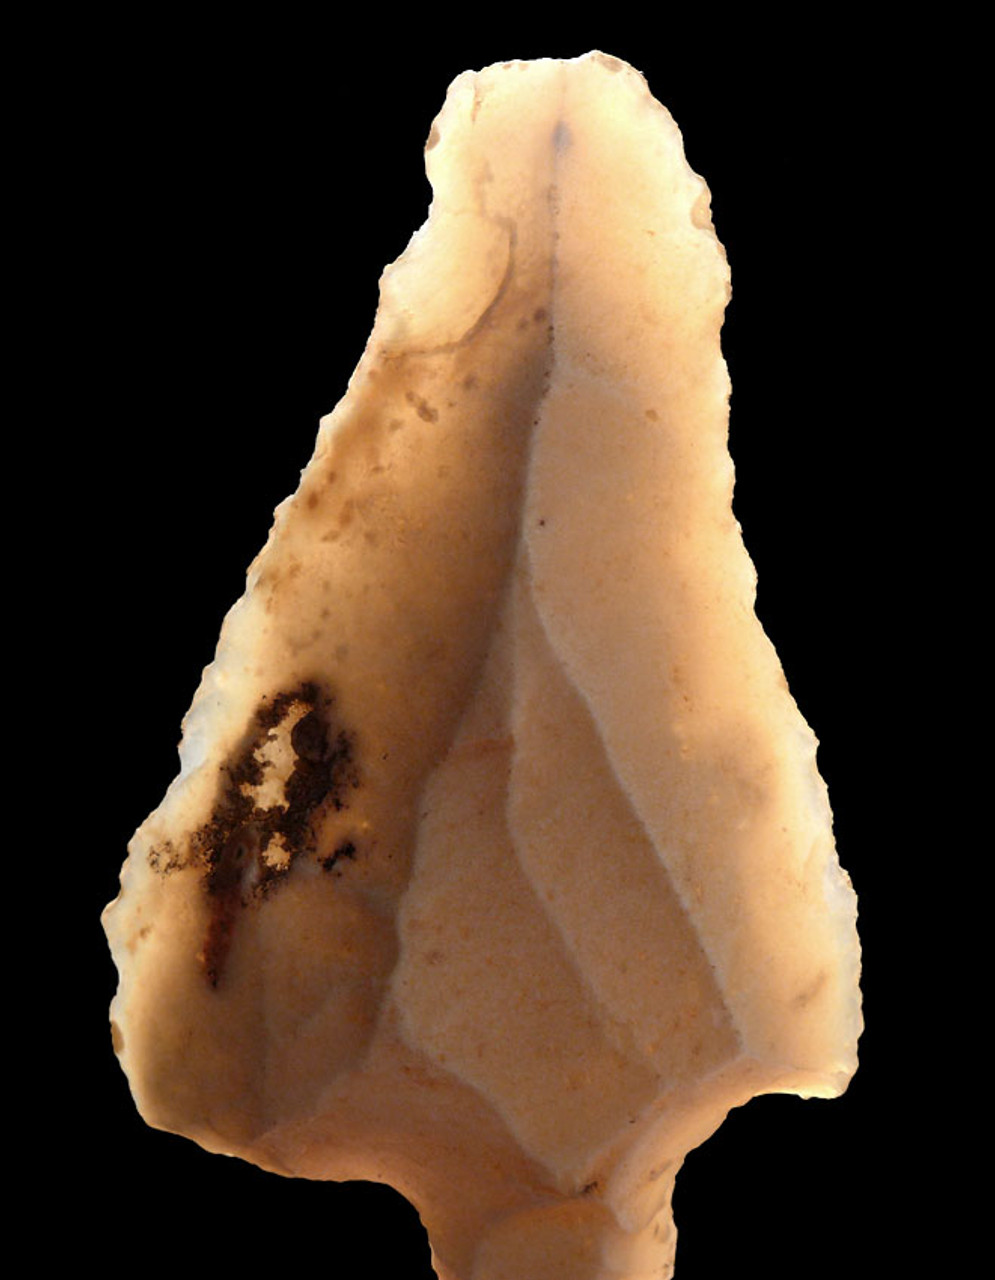 OLDEST ARROWHEAD FINEST LARGE TRANSLUCENT ATERIAN MIDDLE PALEOLITHIC TANGED POINT FROM AFRICA *AT090